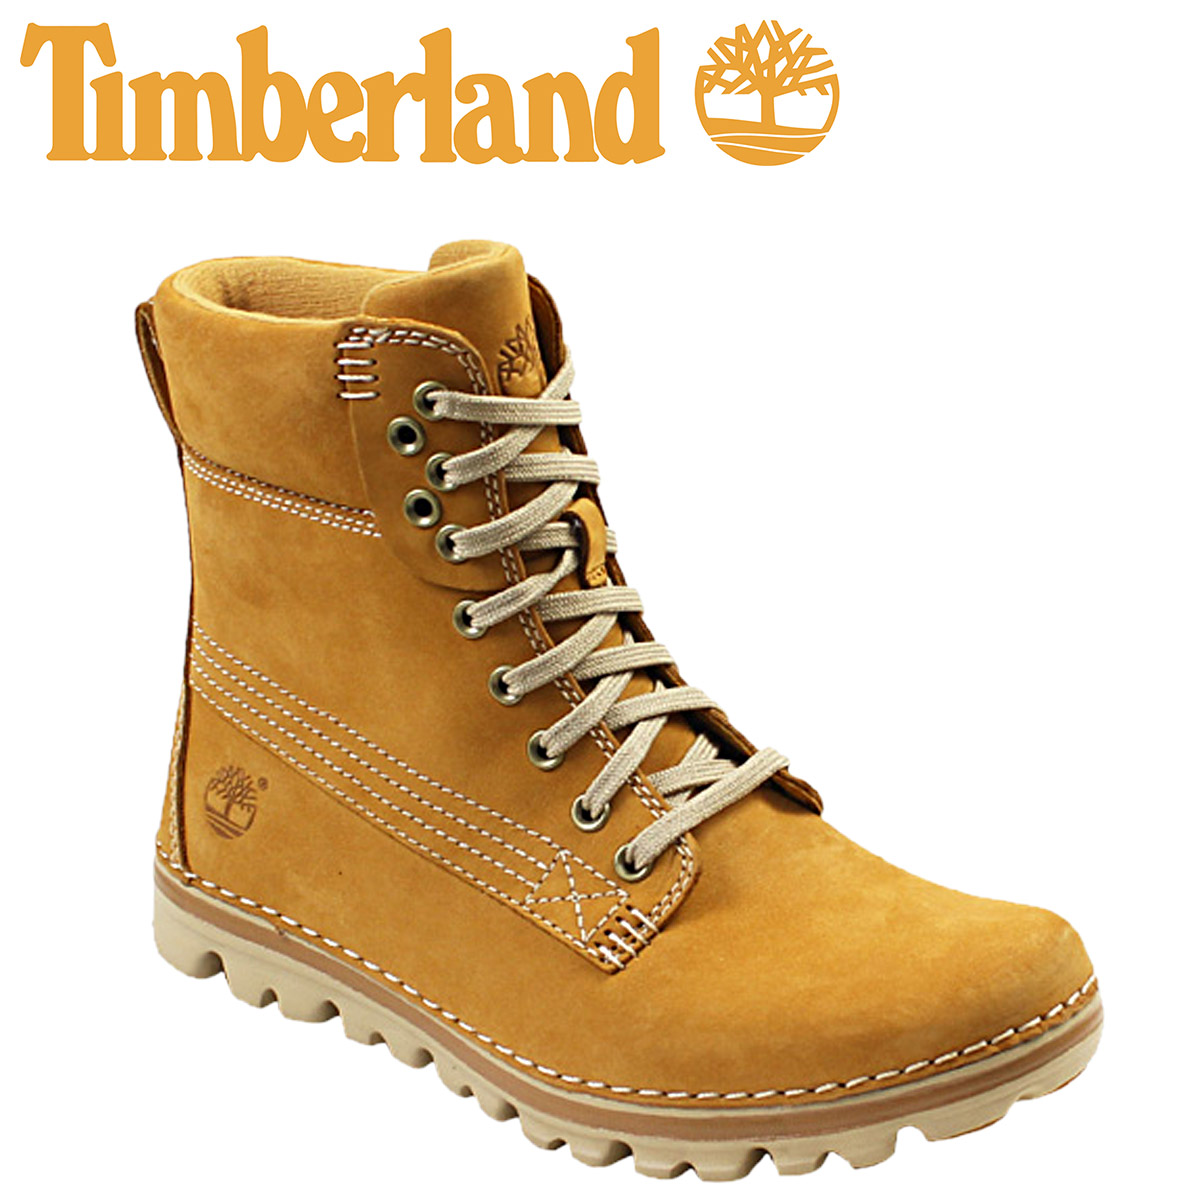 timberland earthkeepers women's shoes